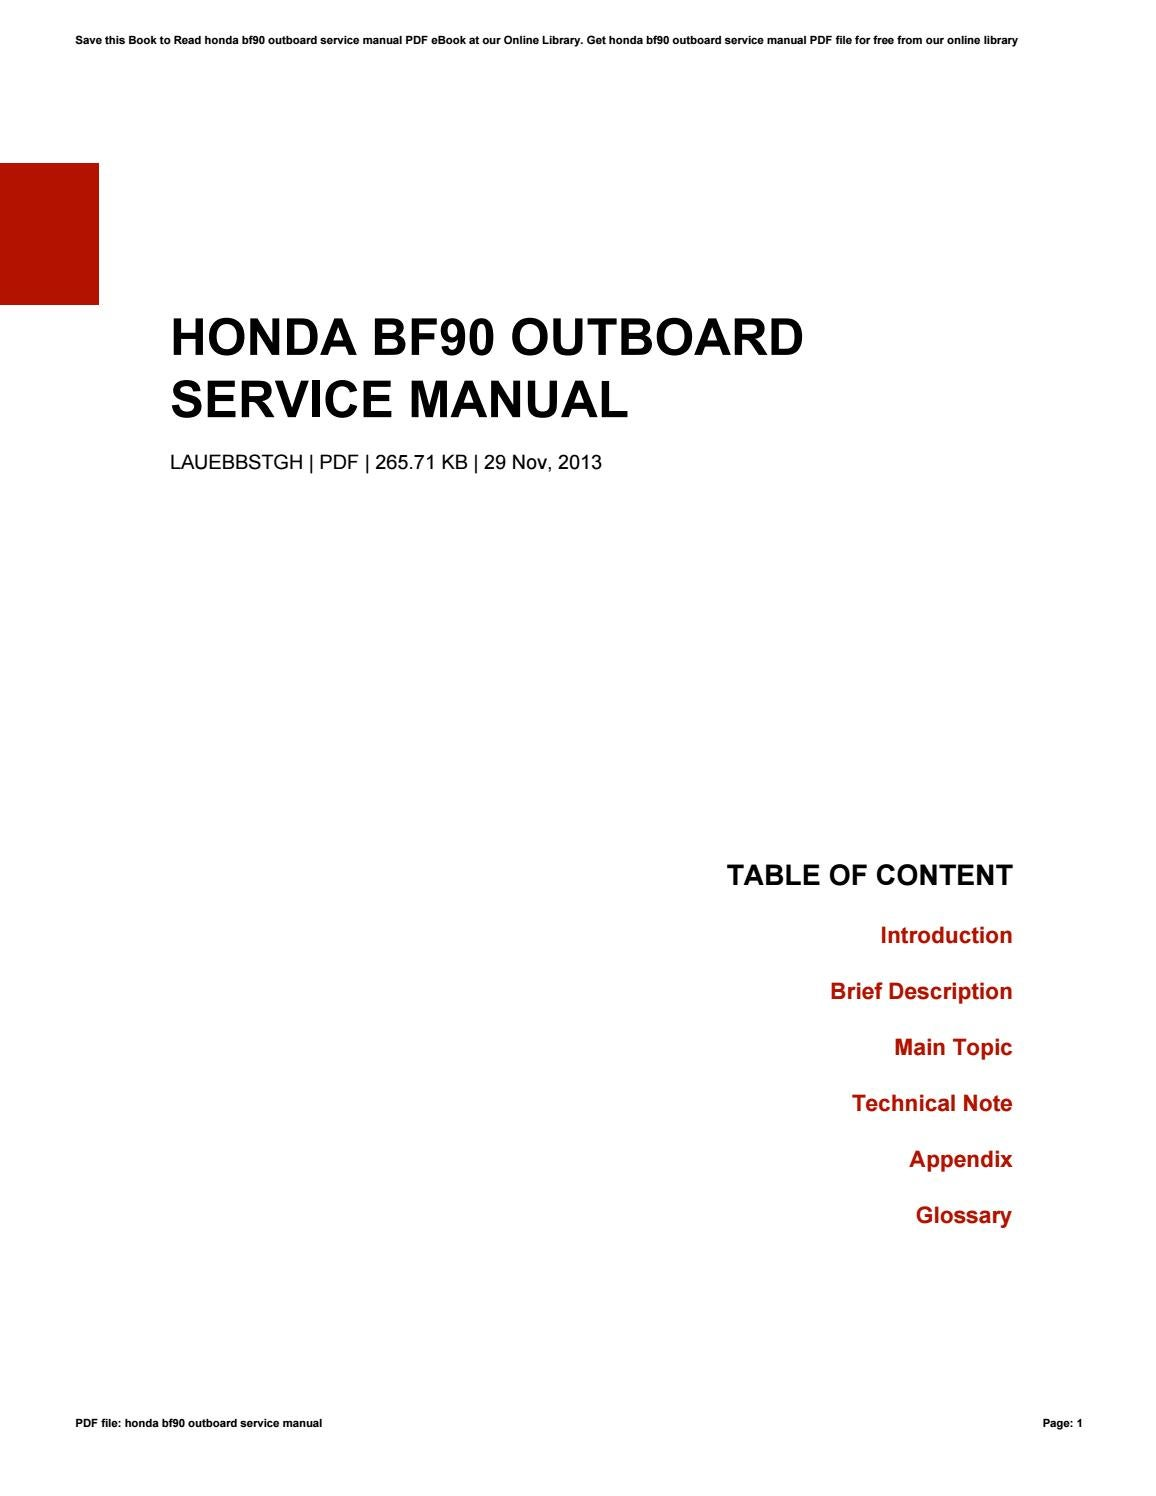 honda bf90 outboard service manual by ruthkang19571